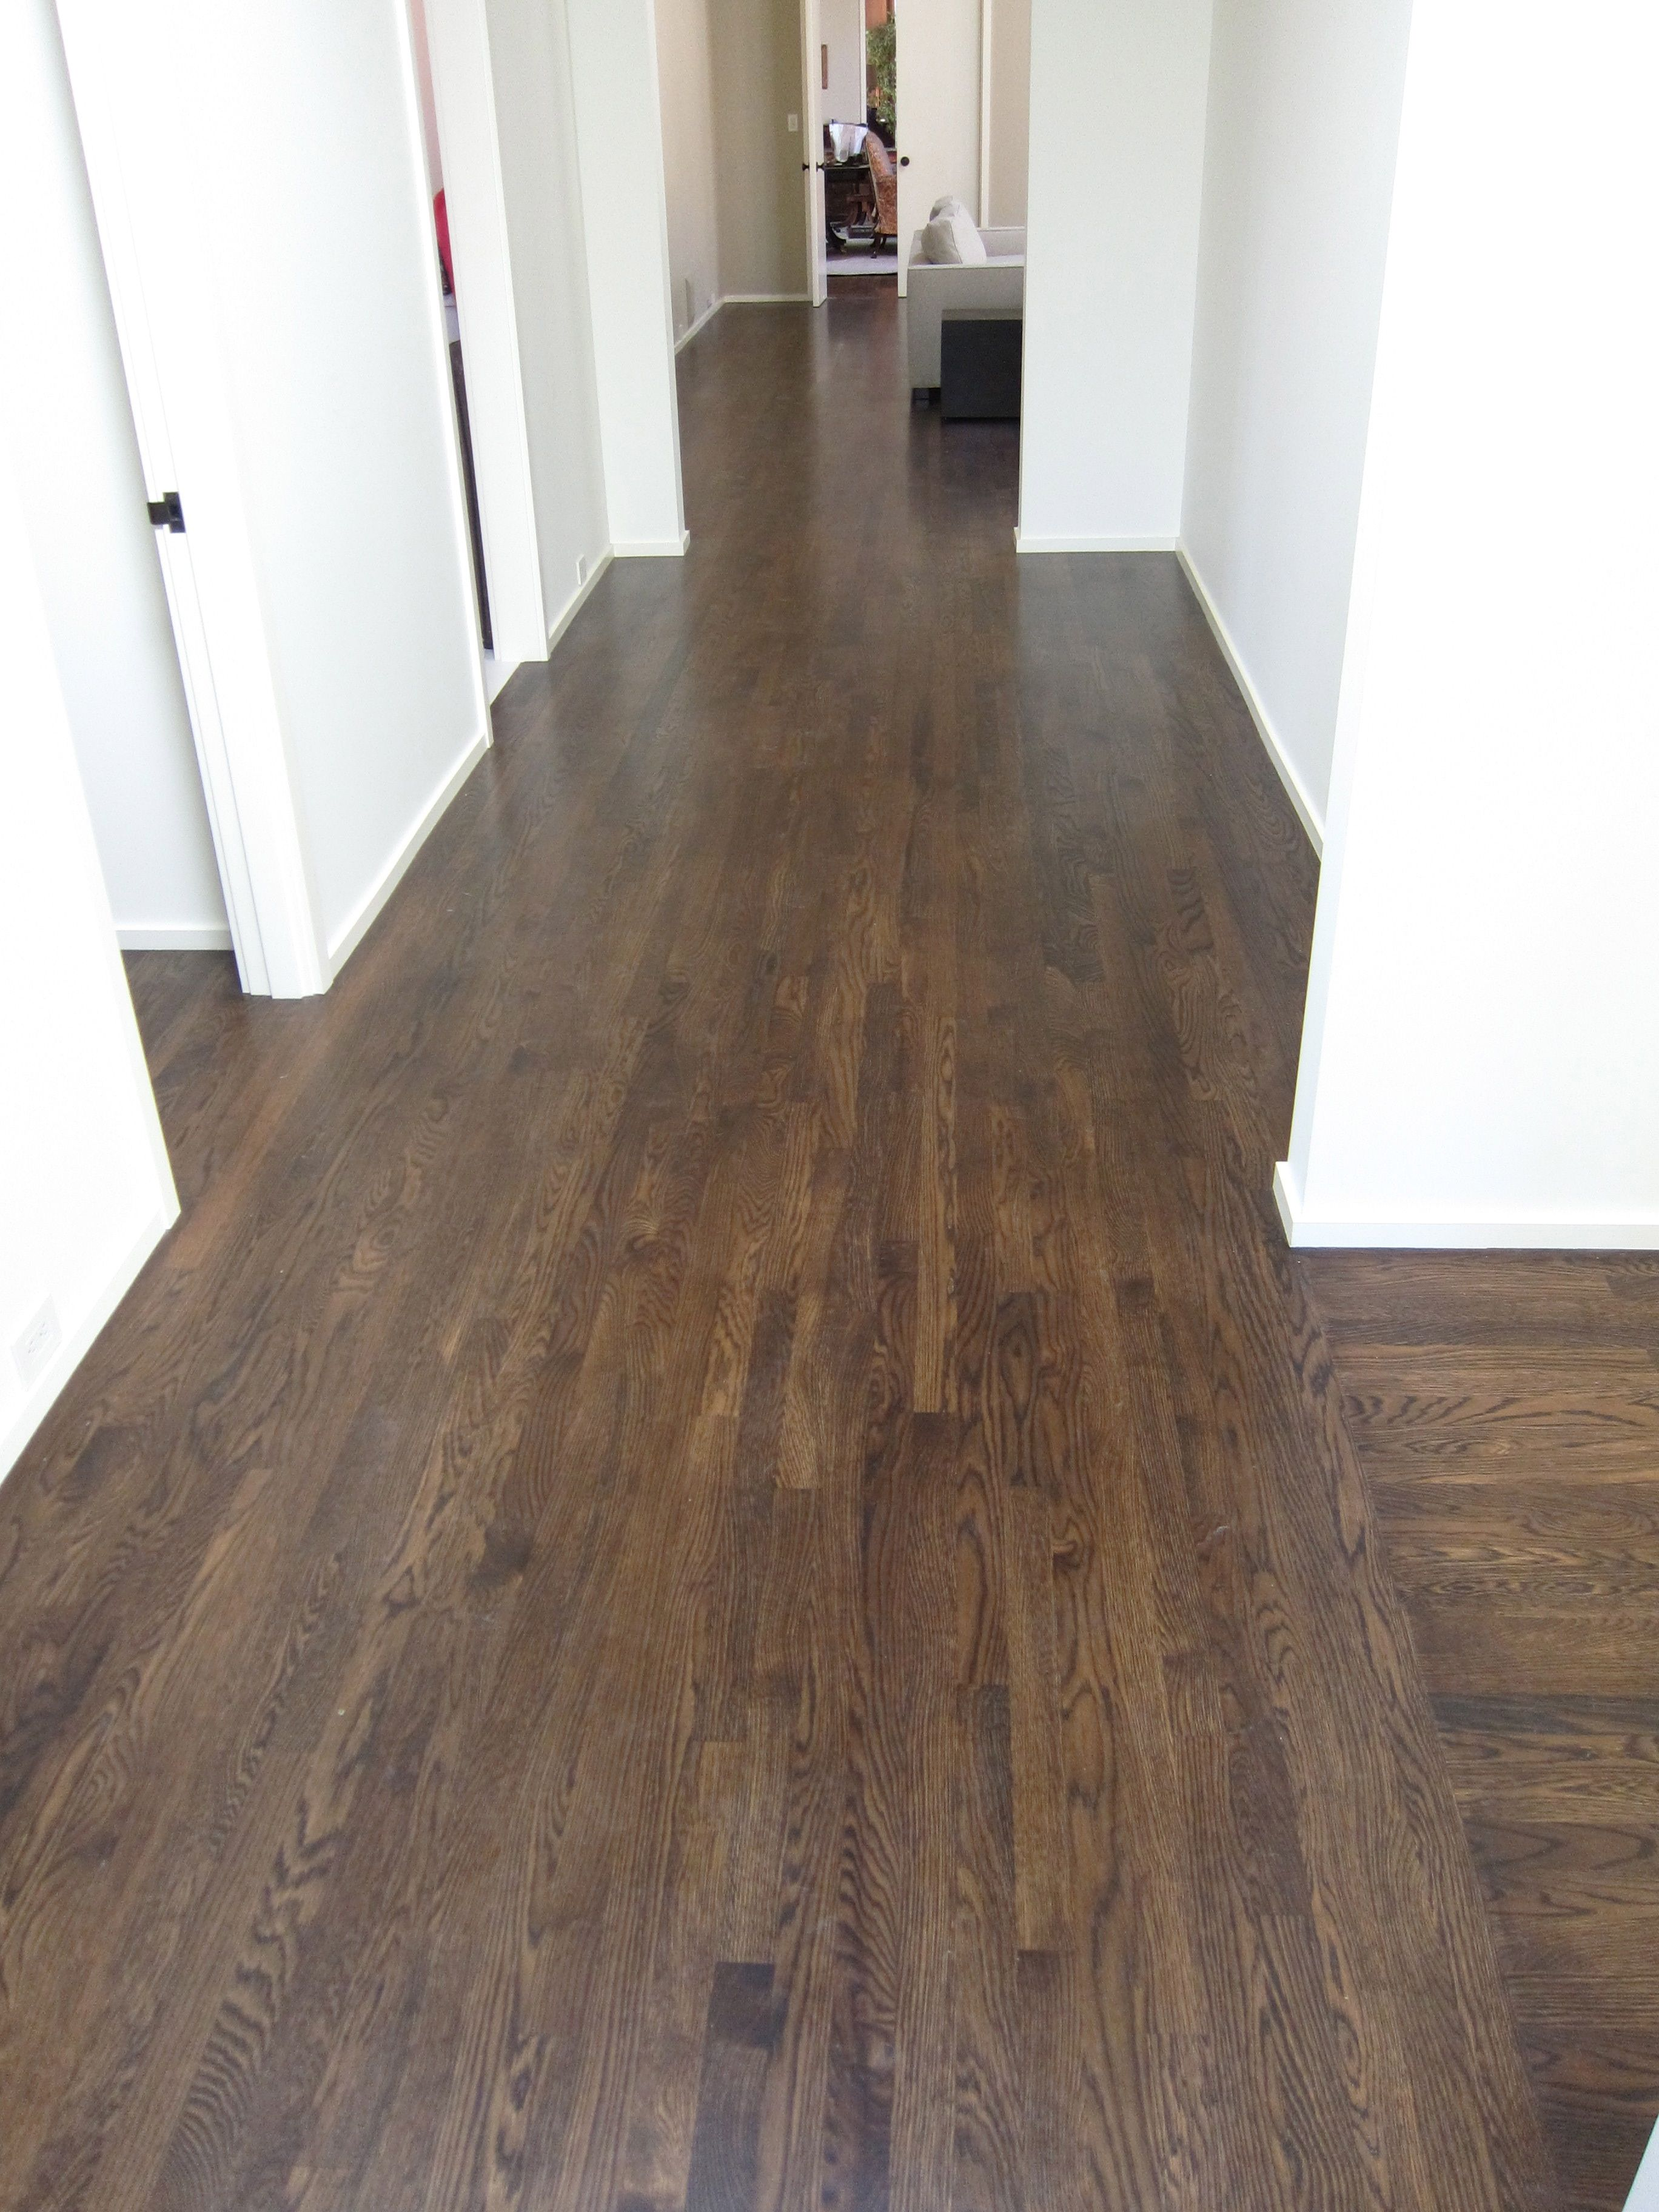 Nino's Hardwood Floors Hallway Flooring, Hardwood floors